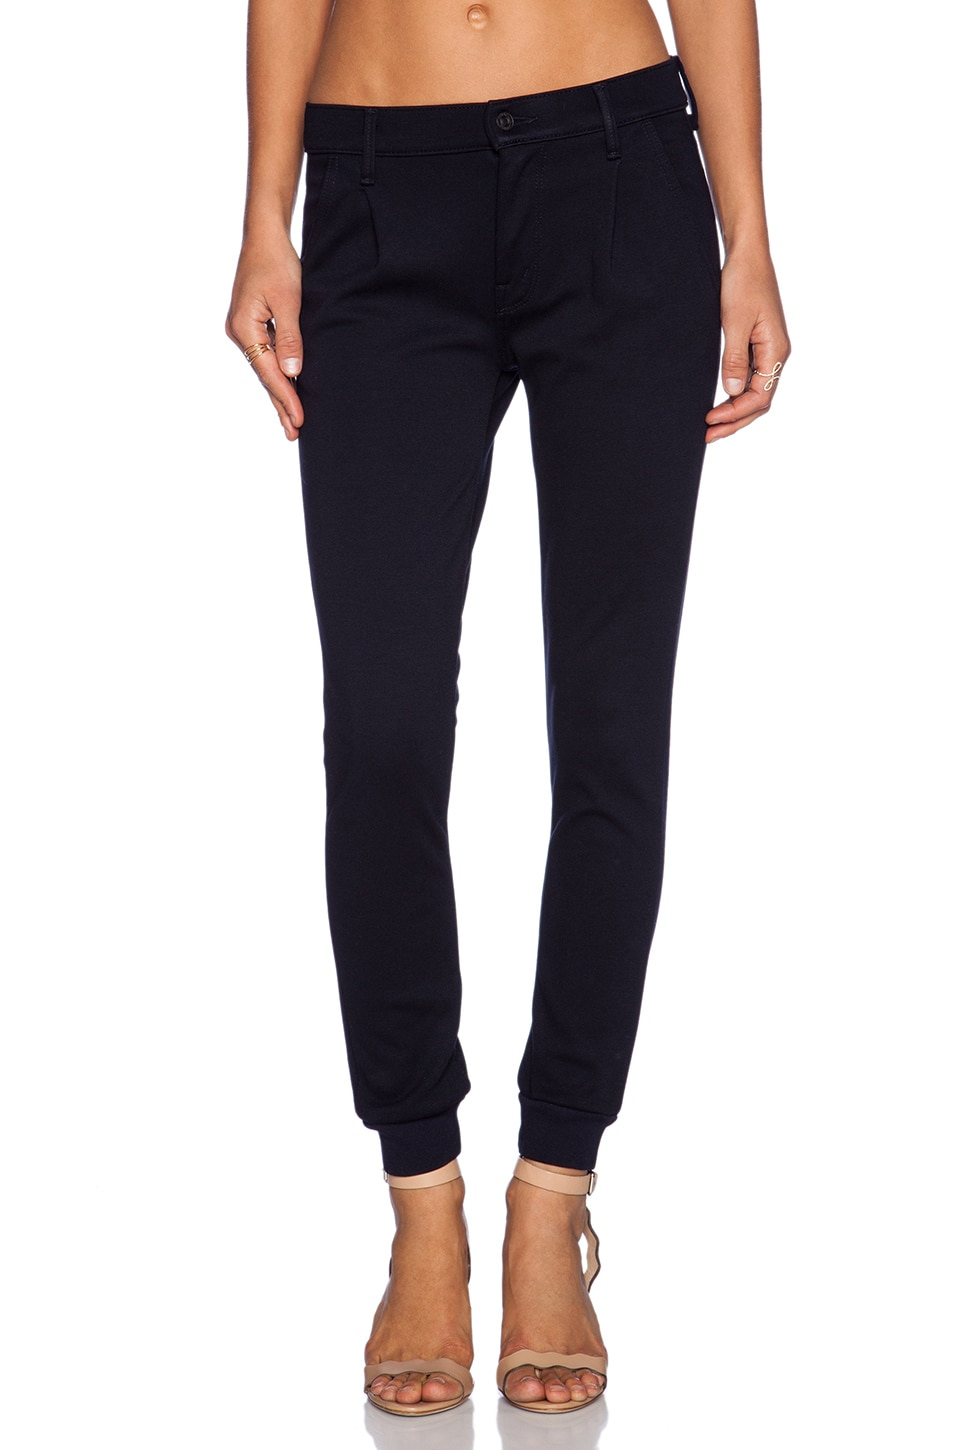 MOTHER Pleated Trainer Pant in French Kissing